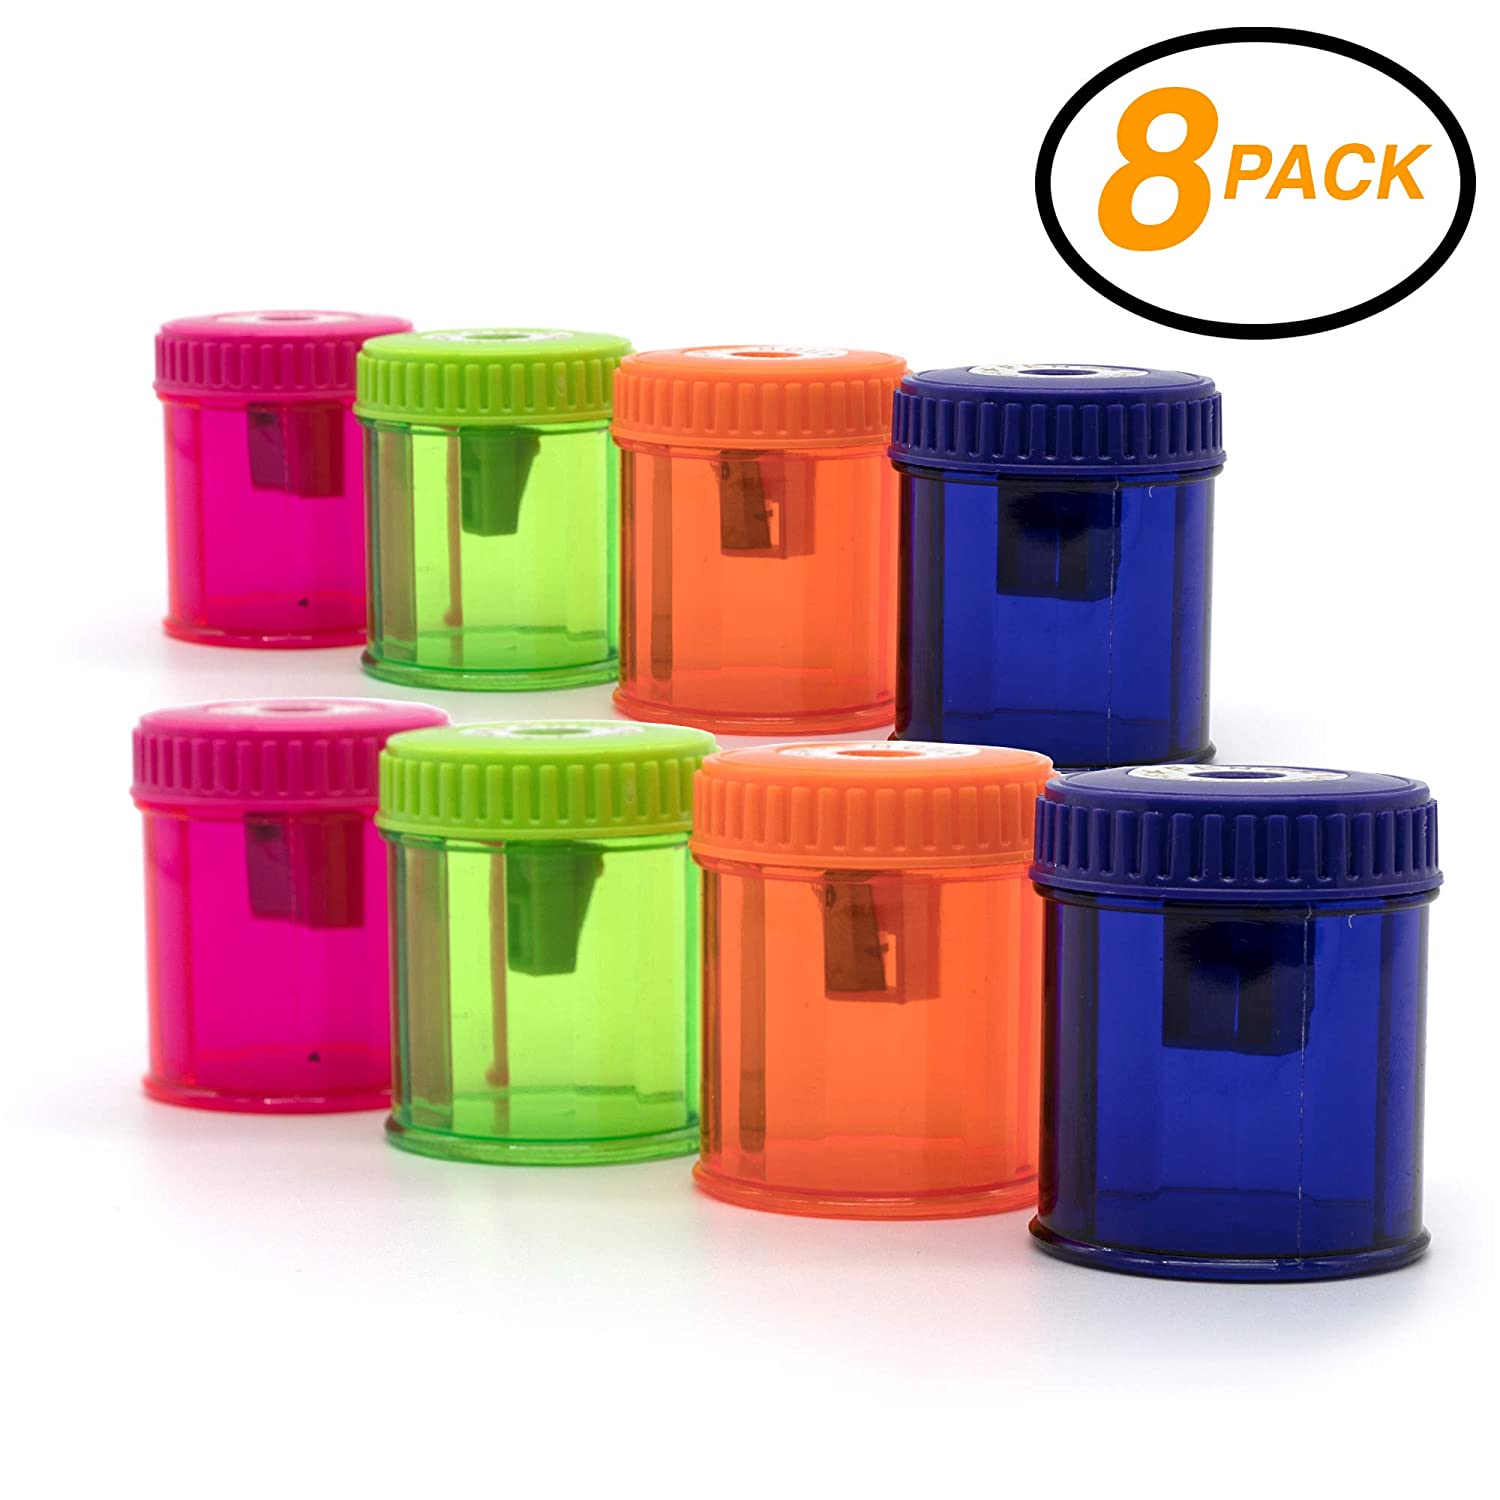 Emraw Single Hole Manual Pencil Sharpener with Round Receptacle to Catch Shavings for Regular Sized Pencils and Crayons Designed in Brightly Colored Plastic -Great for School, Home & Office (8 Pack) 3161